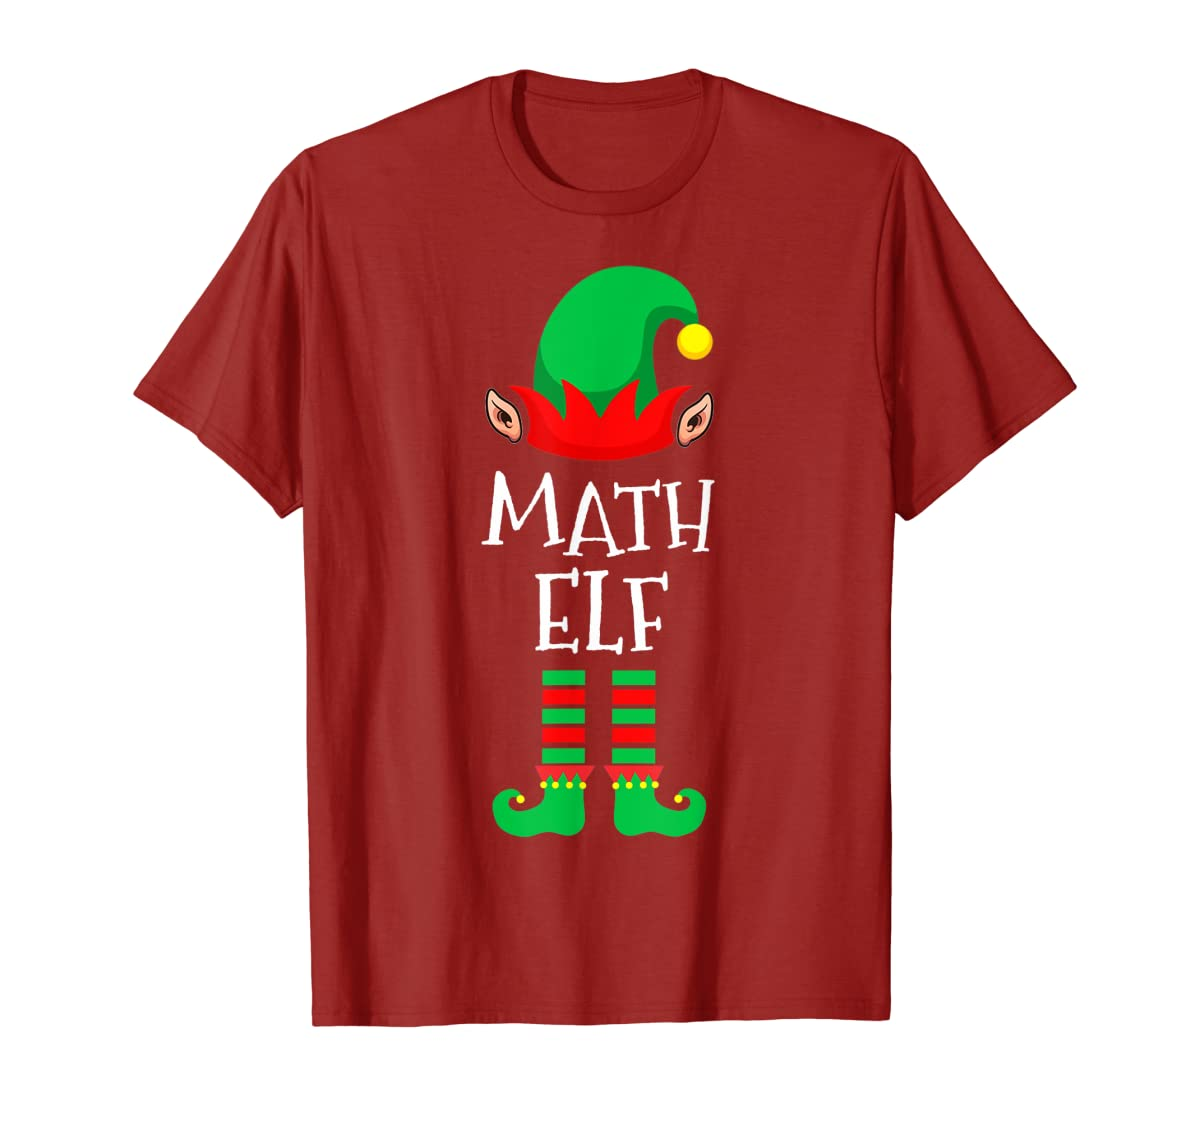 Math Elf - Funny School Teacher Christmas T-Shirt-Men's T-Shirt-Red